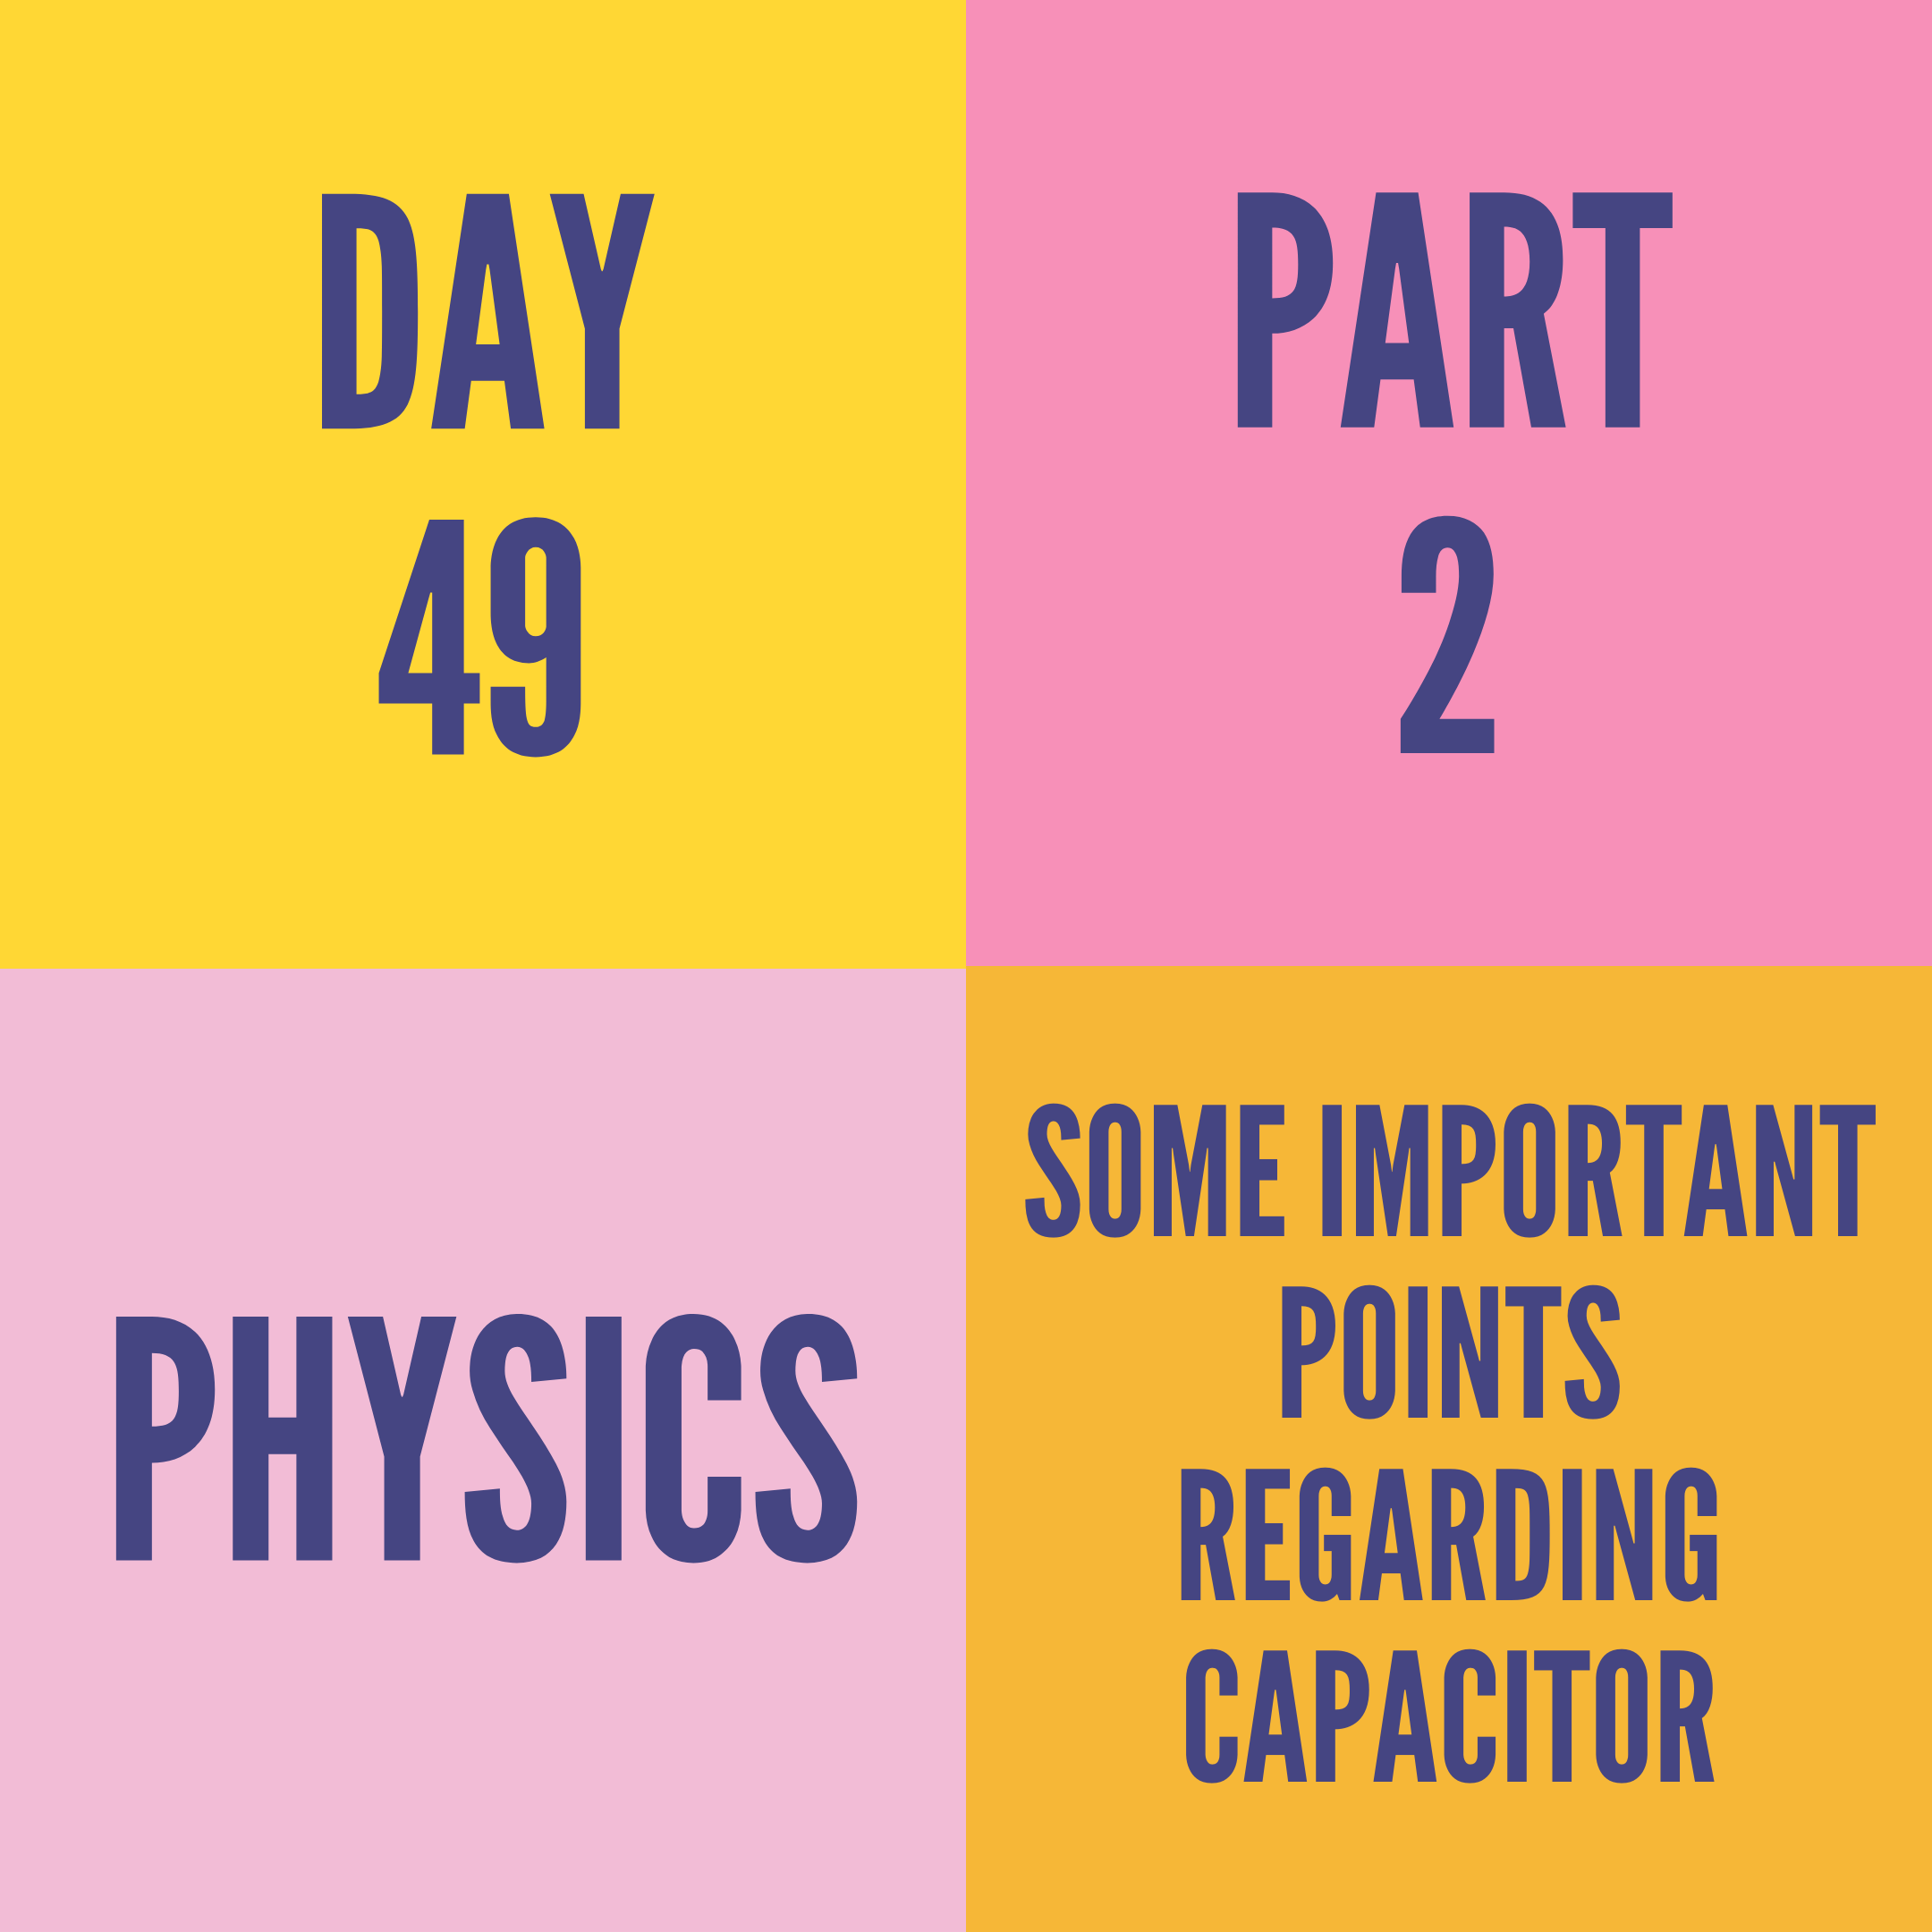 DAY-49 PART-2  SOME IMPORTANT POINTS REGARDING CAPACITOR